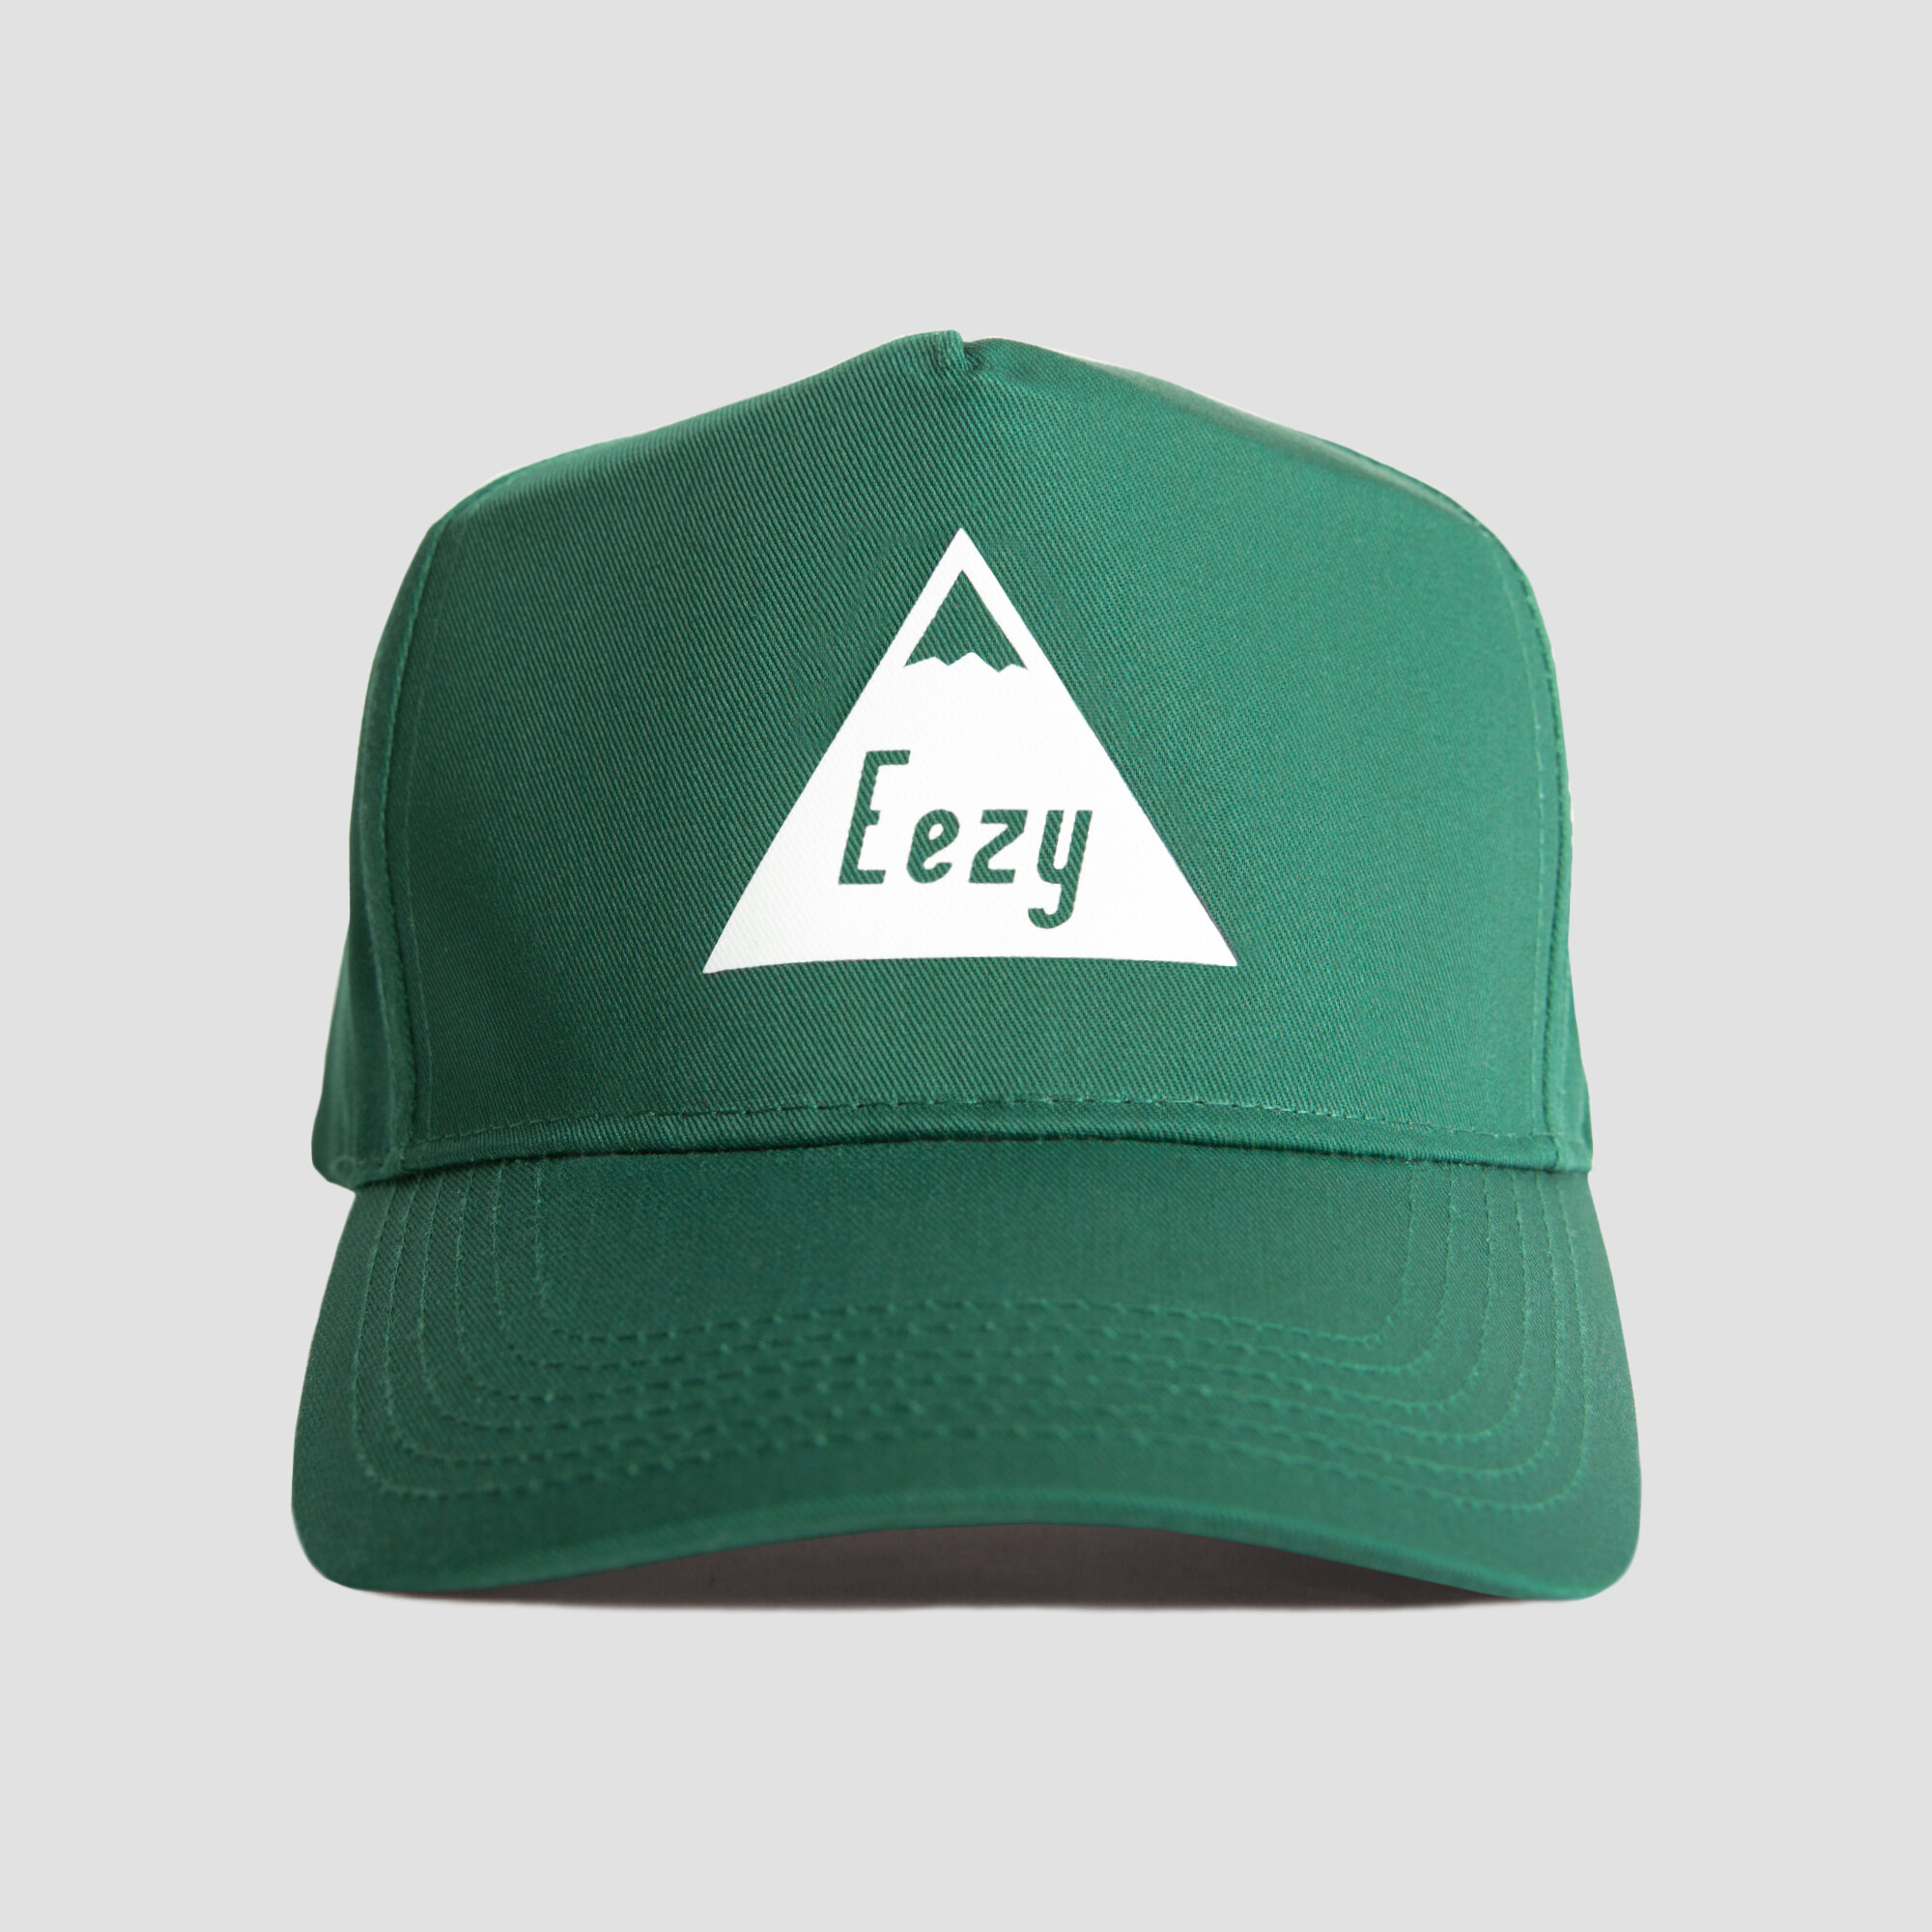 Summit - Forest Green - $22.95